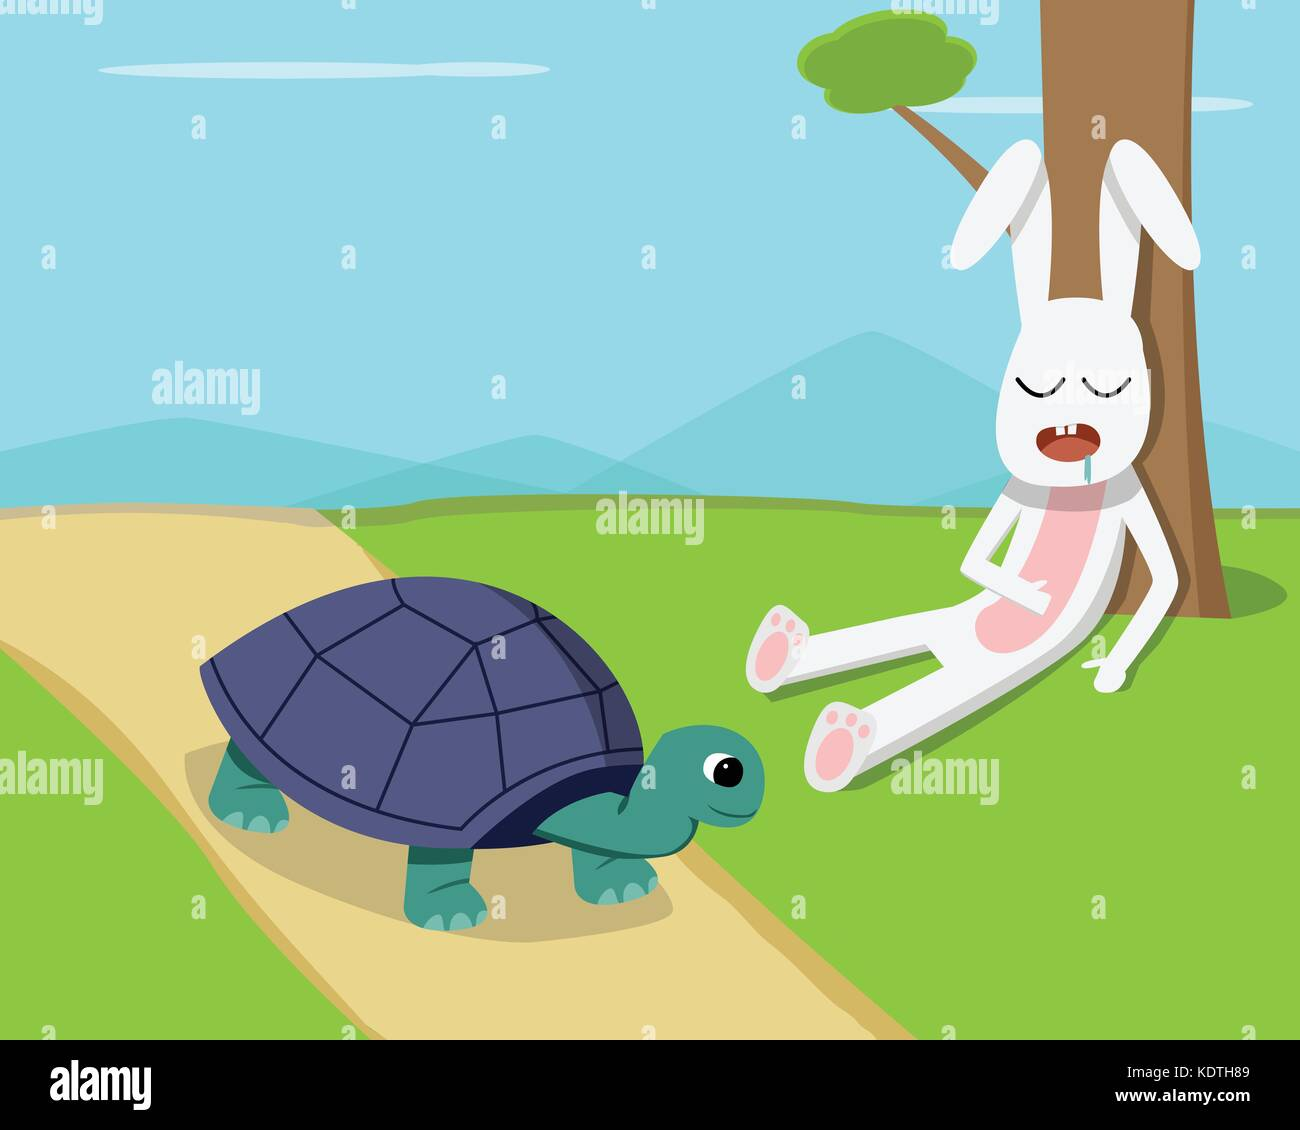 the rabbit and the turtle running race